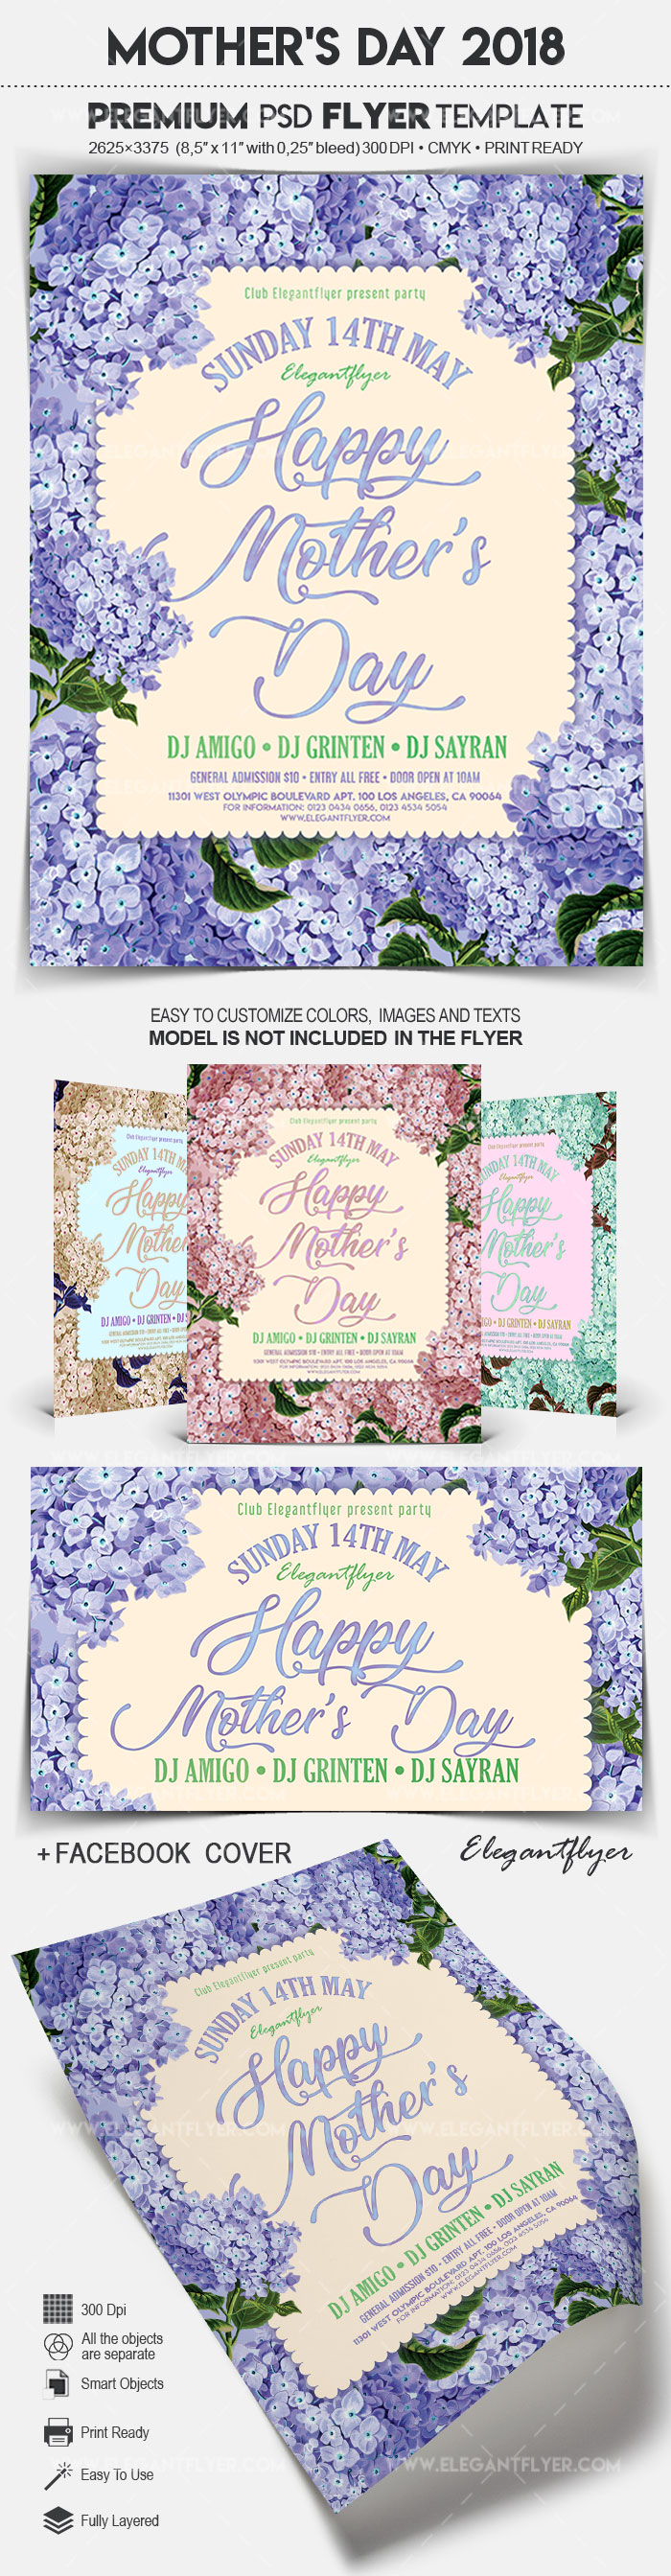 Mother's Day 2018 – Flyer PSD Template